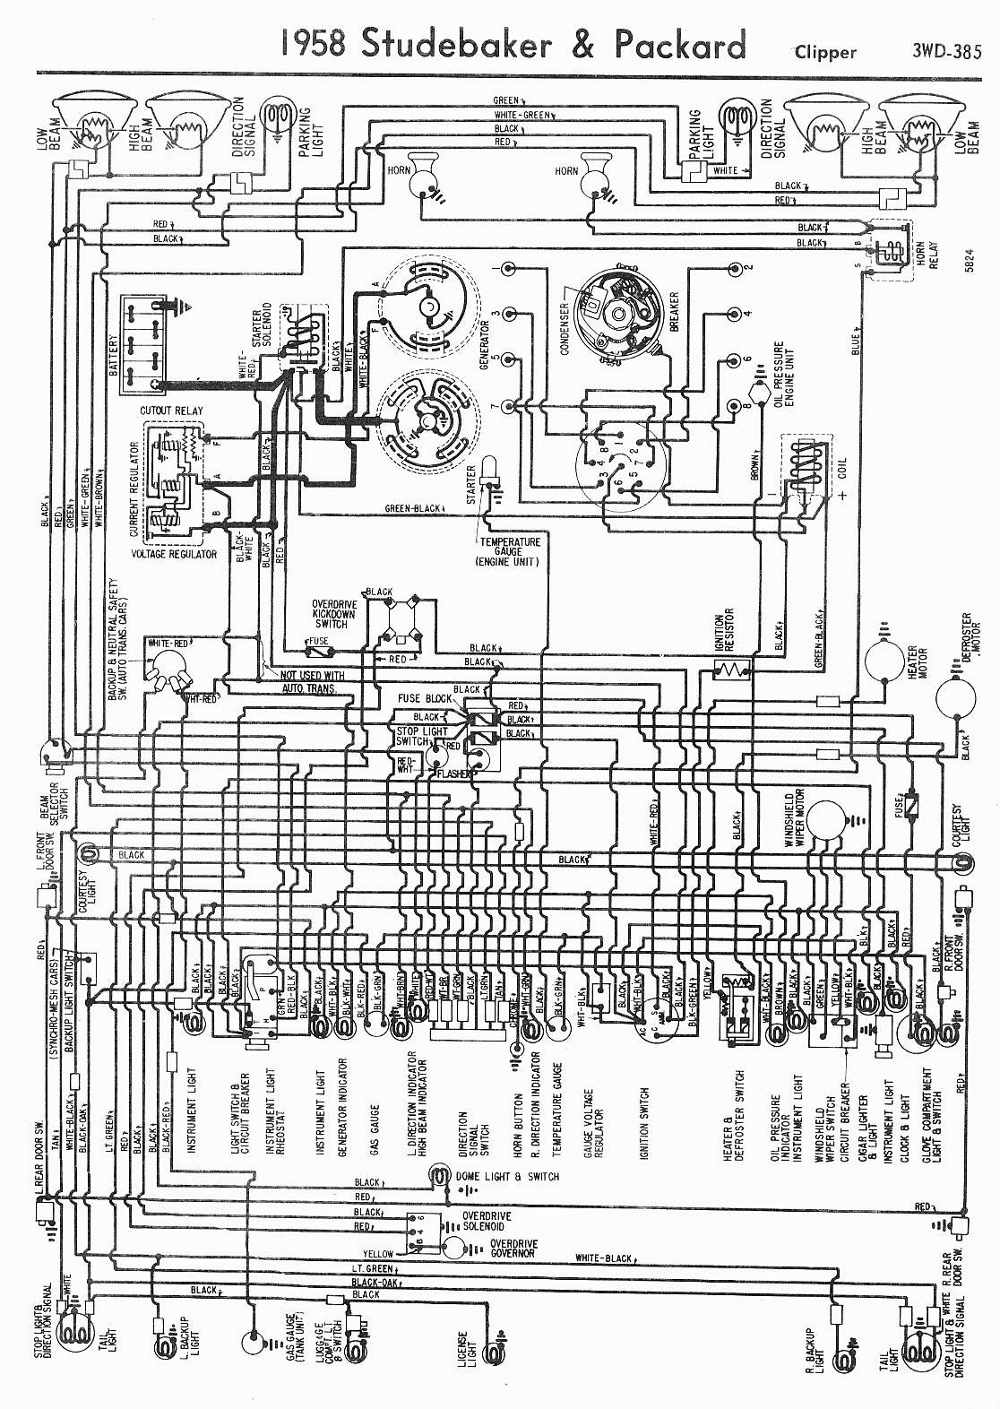 1948 Dodge Pickup Wiring Diagram Electrical Diagrams 1942 1946 1947 Plymouth Car Color 1949 Packard Wire Data Schema U2022 For 2008 Dakota Pick Up